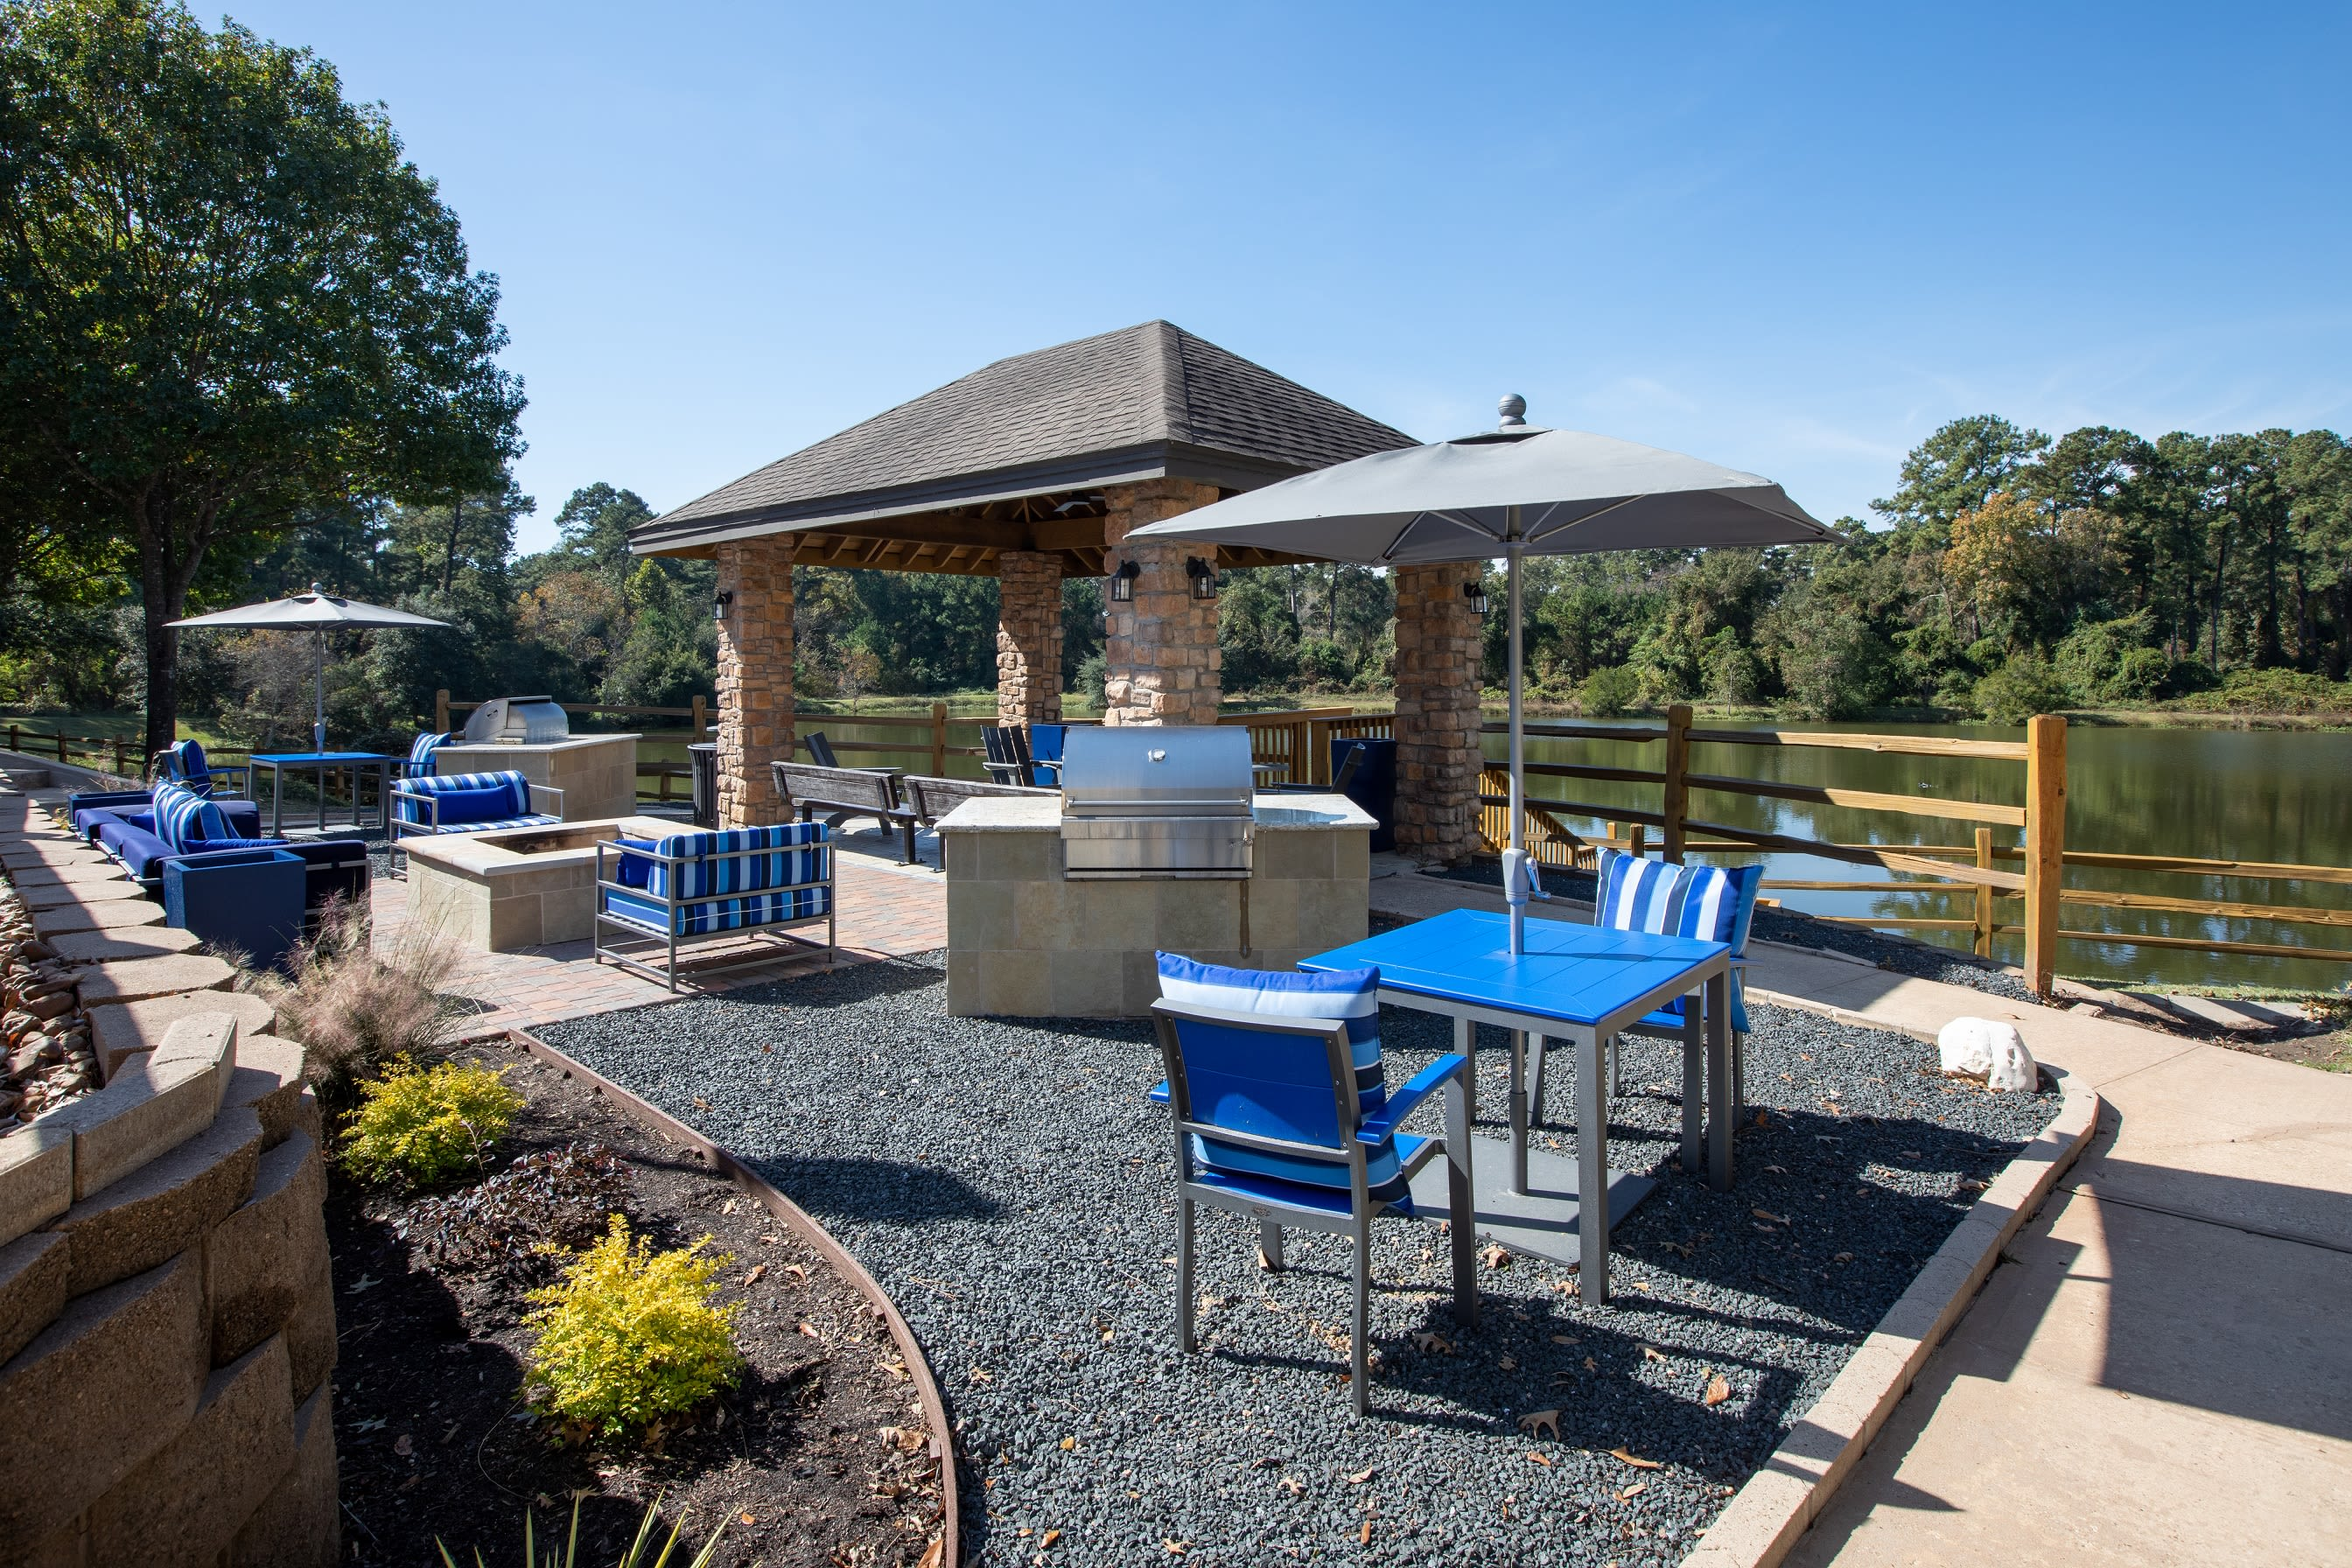 Gazebo with grilling area and outdoor seating for residents at Artisan at Lake Wyndemere in The Woodlands, Texas